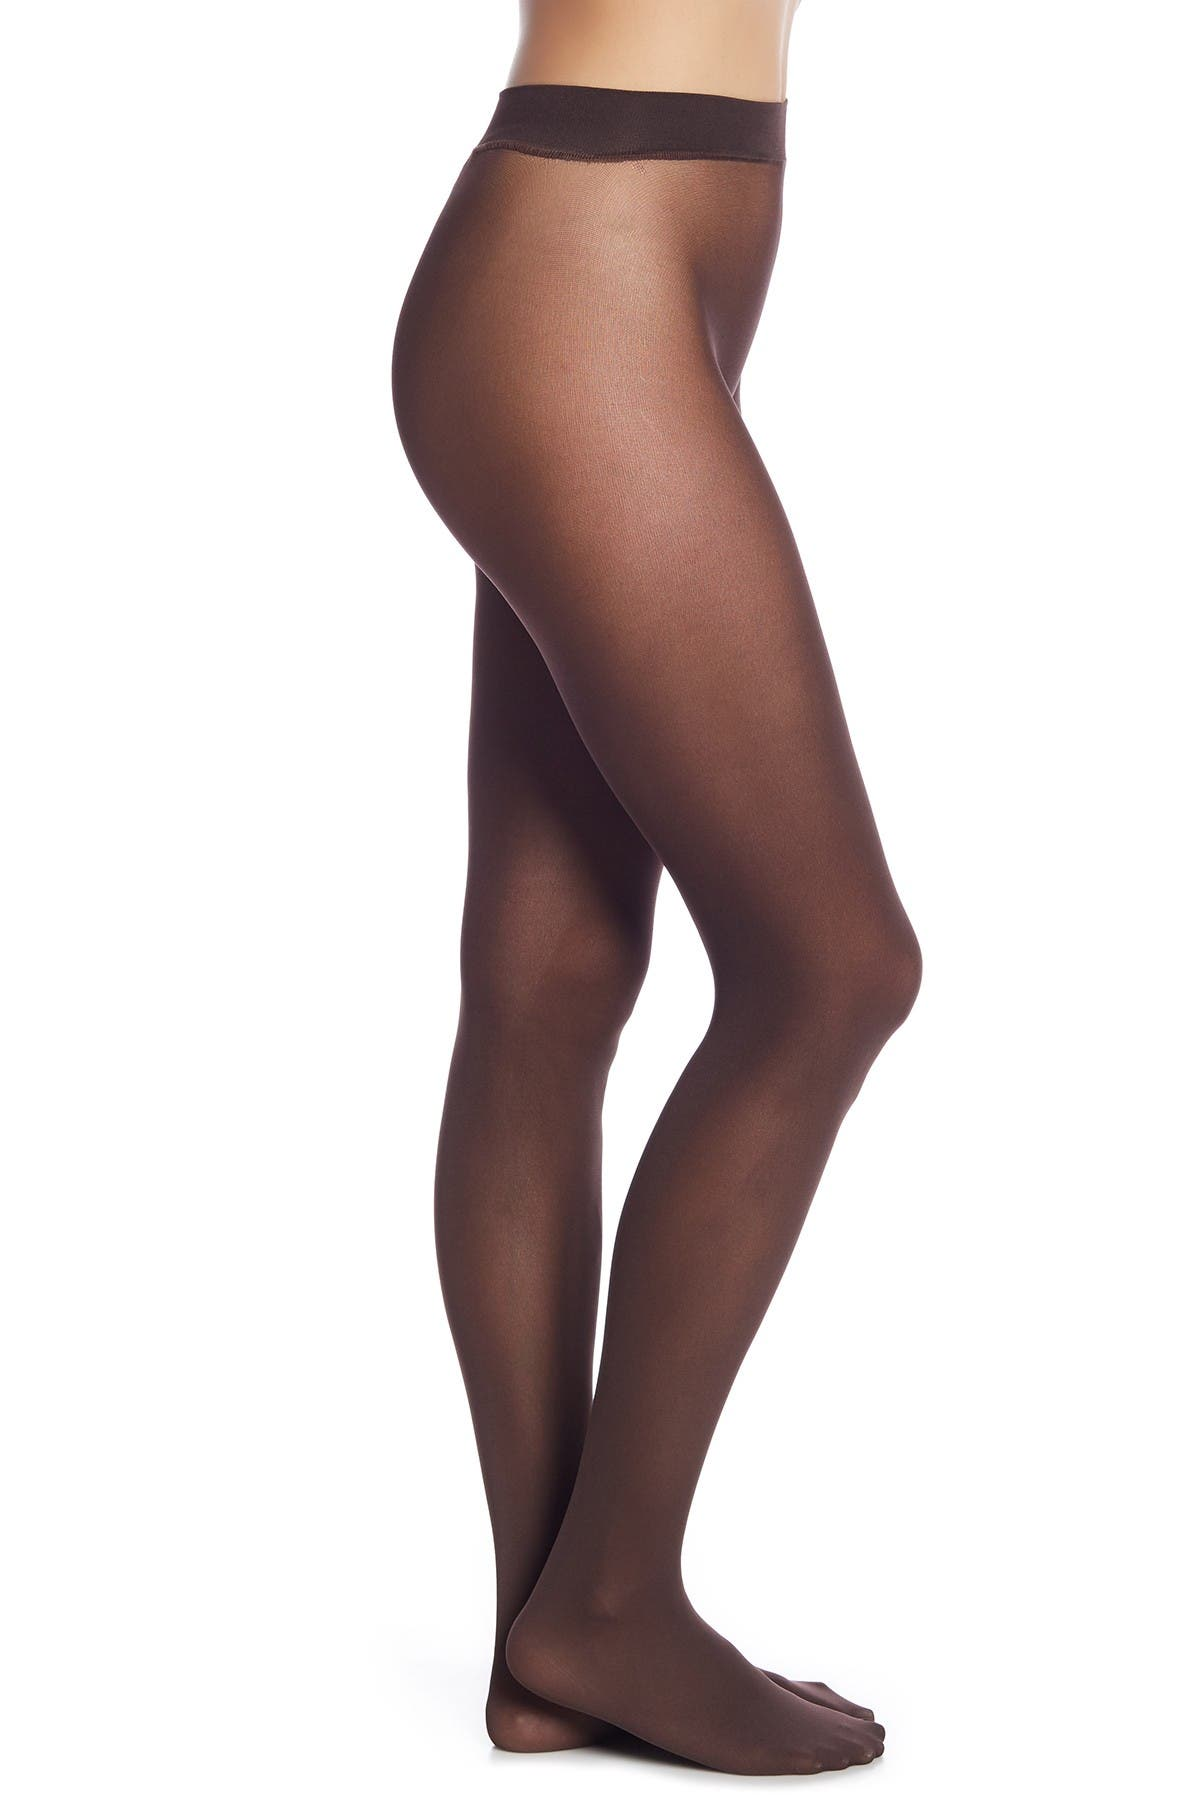 Image of HUE Seamless Opaque Tight